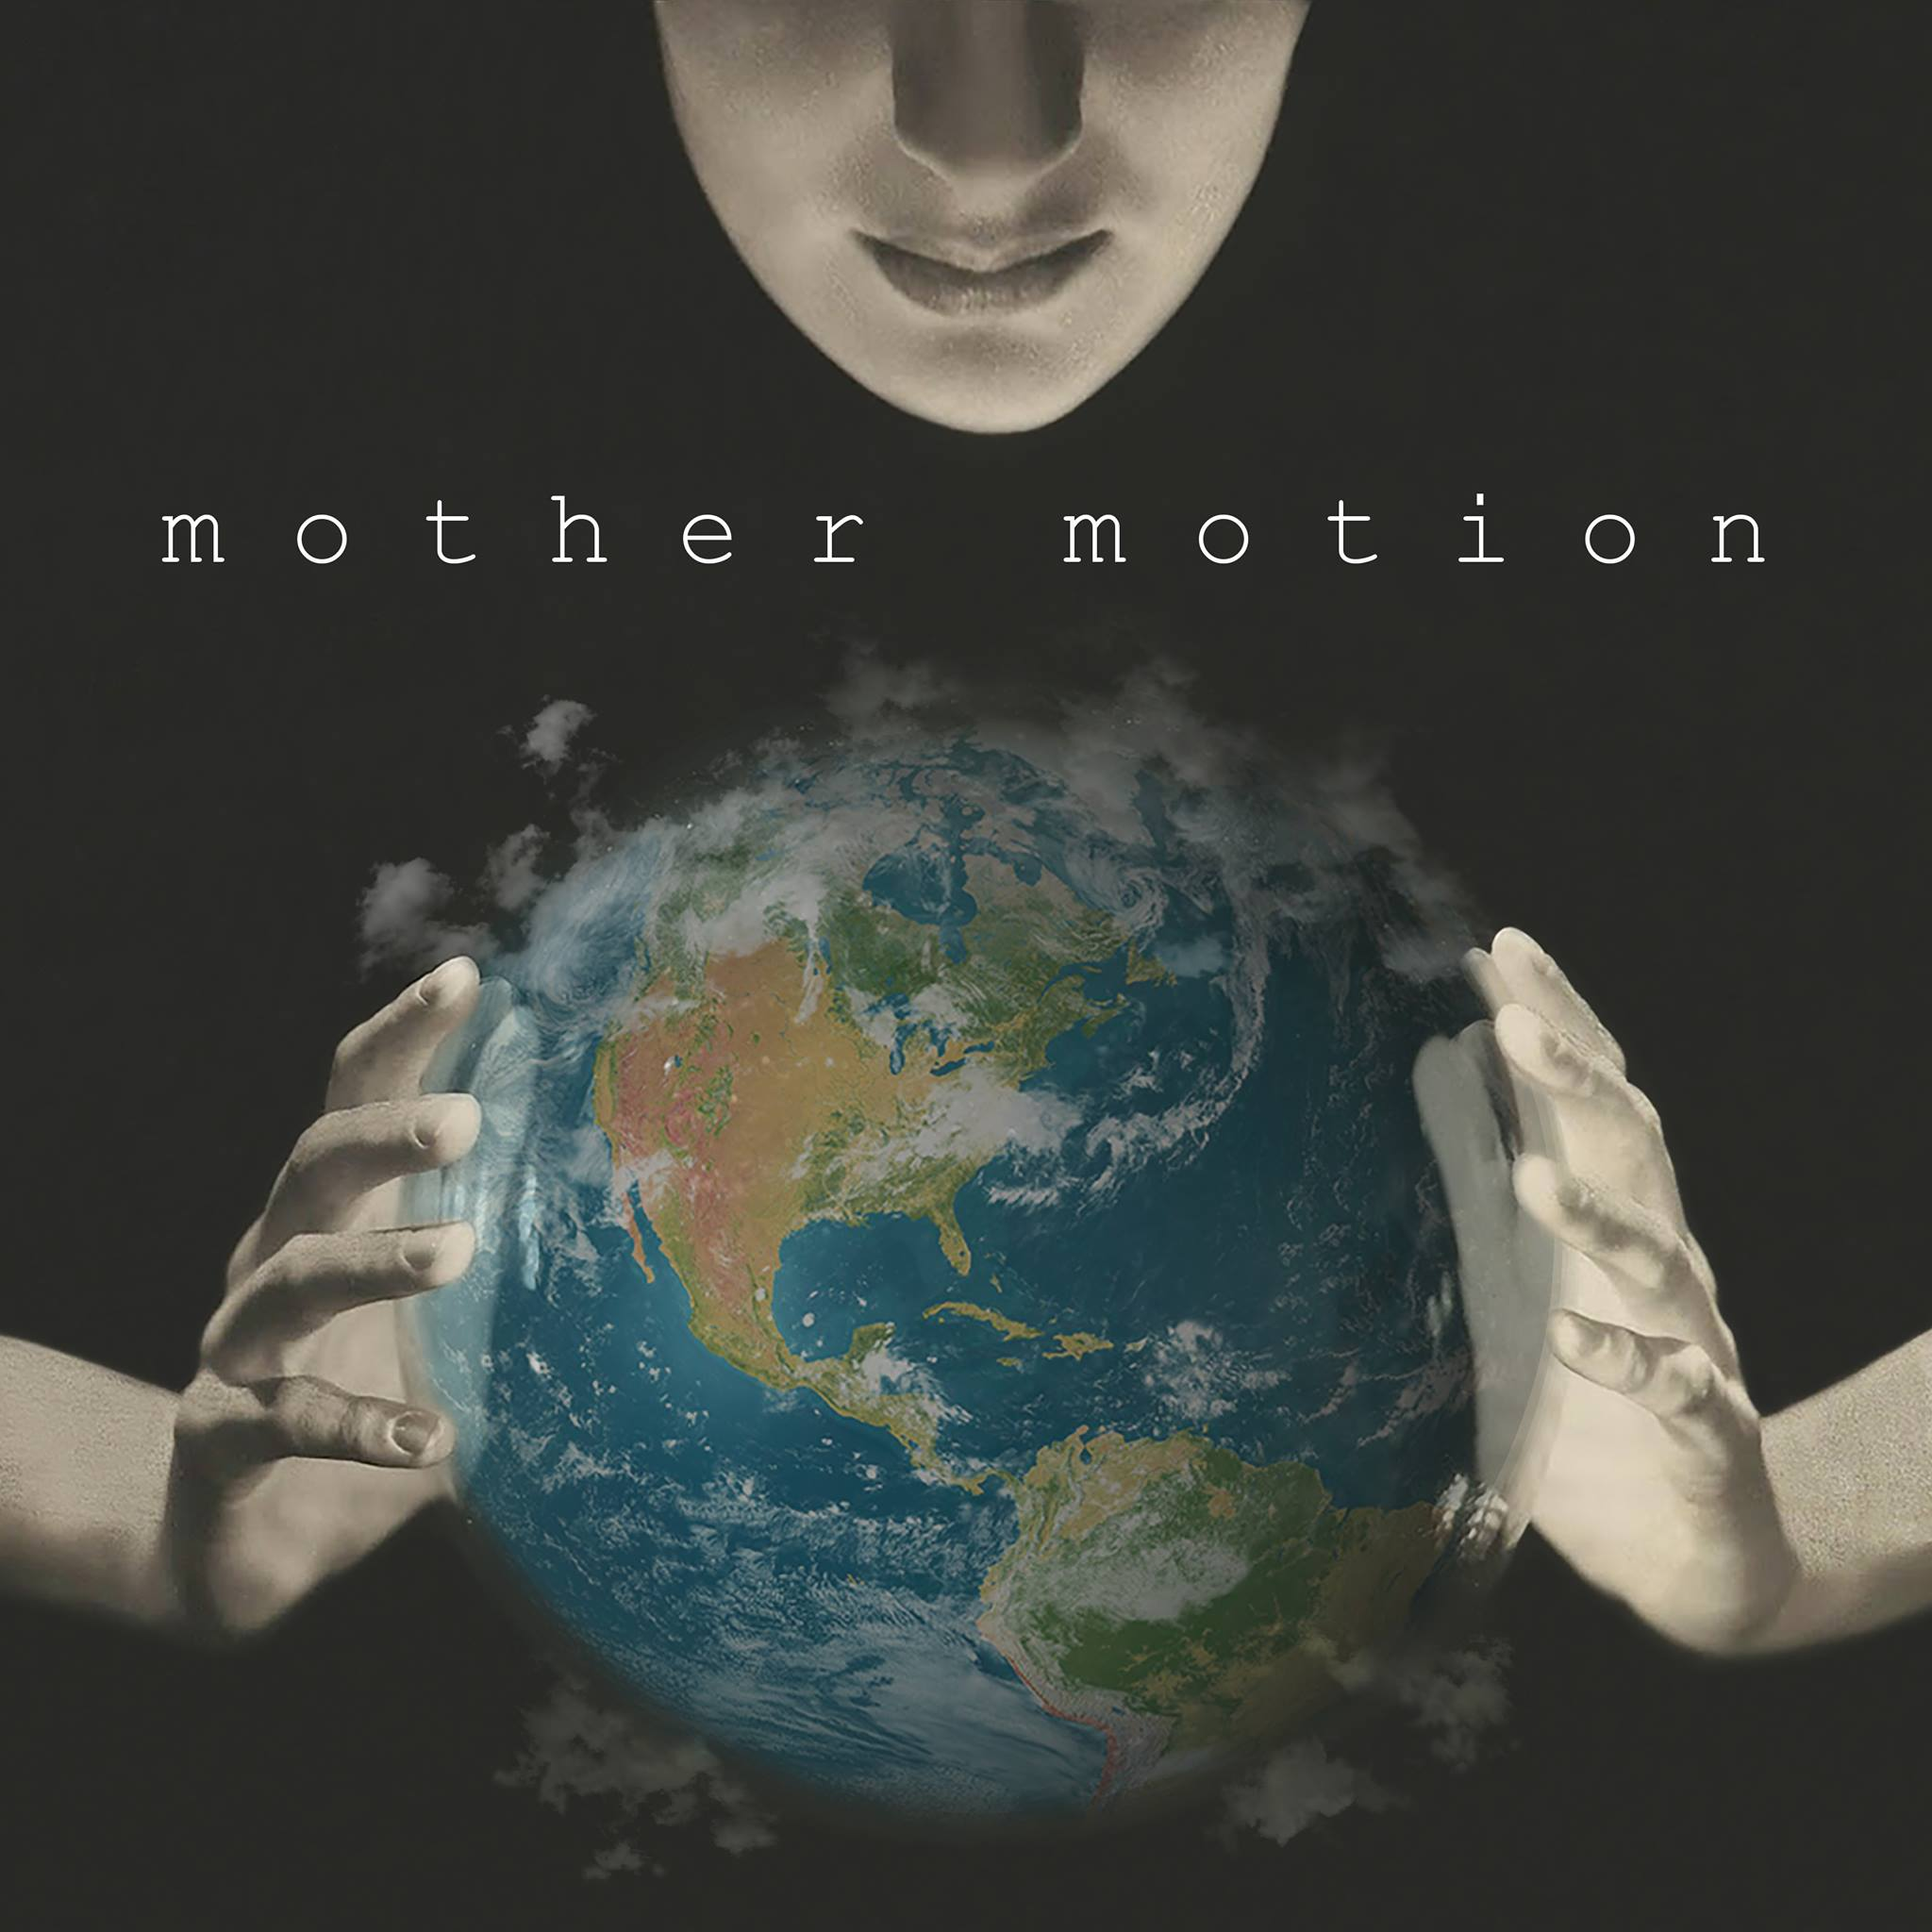 Front Cover - Album Art & Graphic Design,   Self-Titled  by Mother Motion, Self-Released, U.S. (2016)